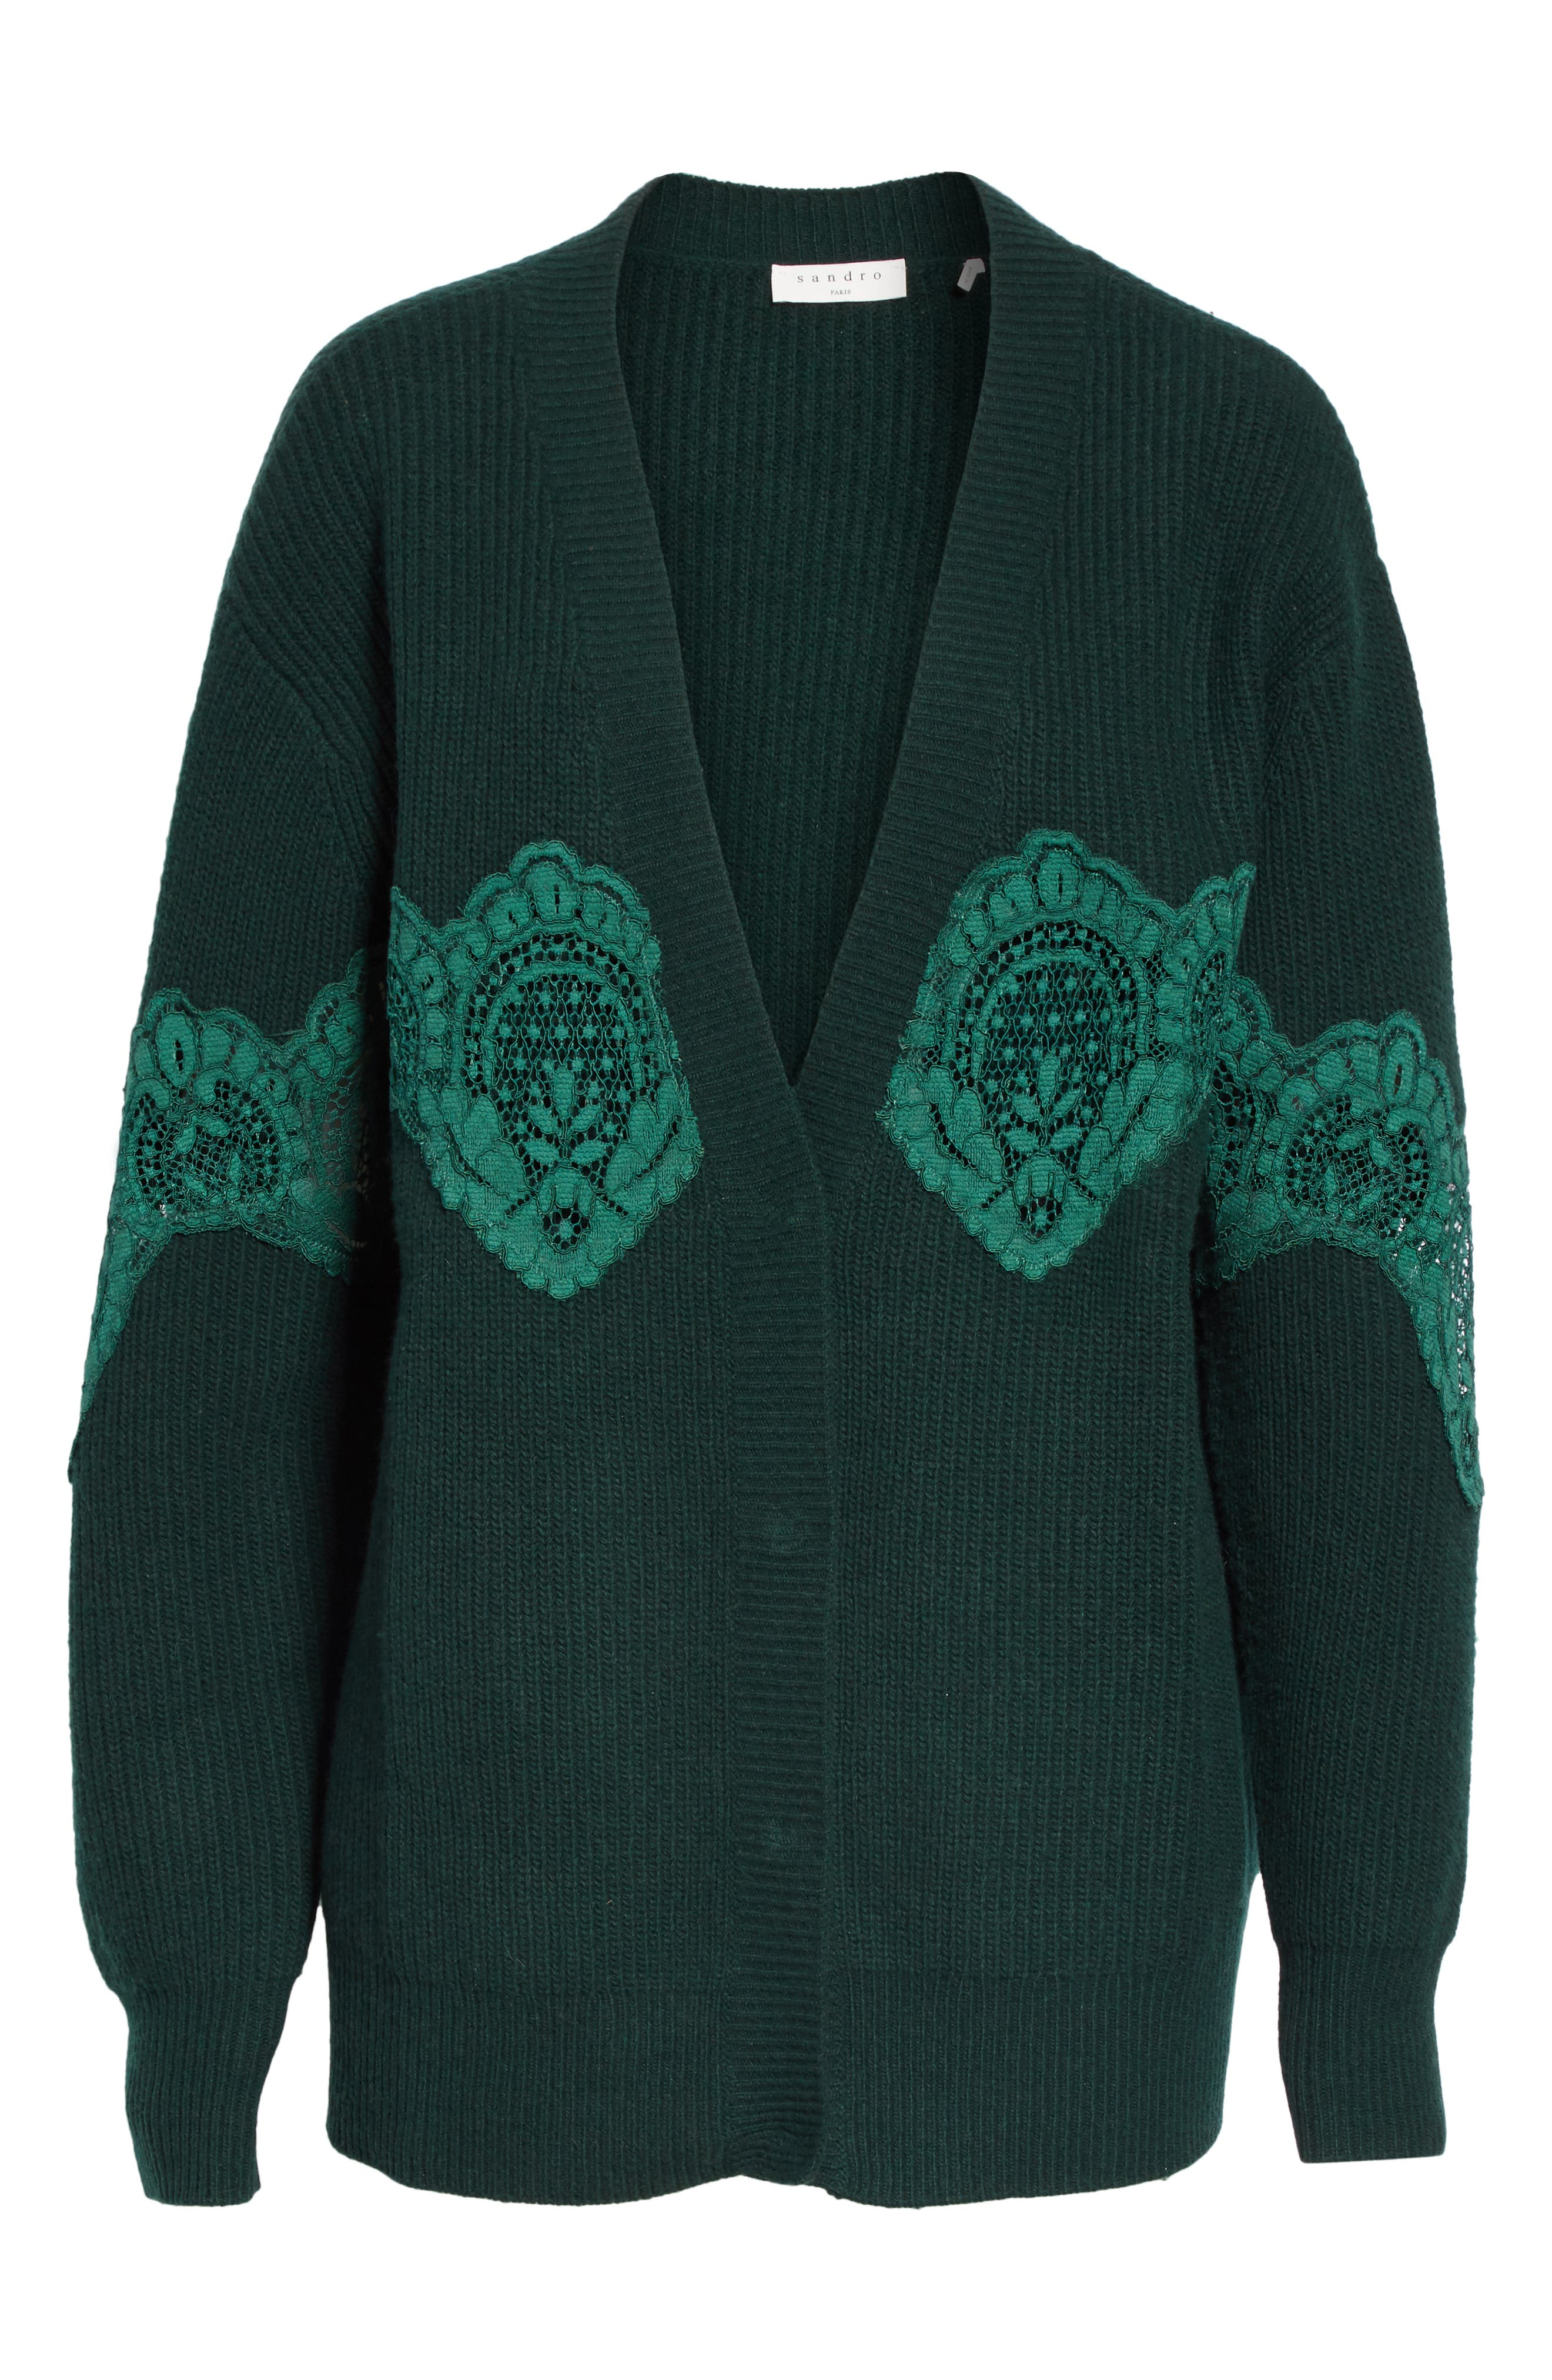 Tower Lace Inset Wool Blend Cardigan,                             Alternate thumbnail 6, color,                             BOTTLE GREEN